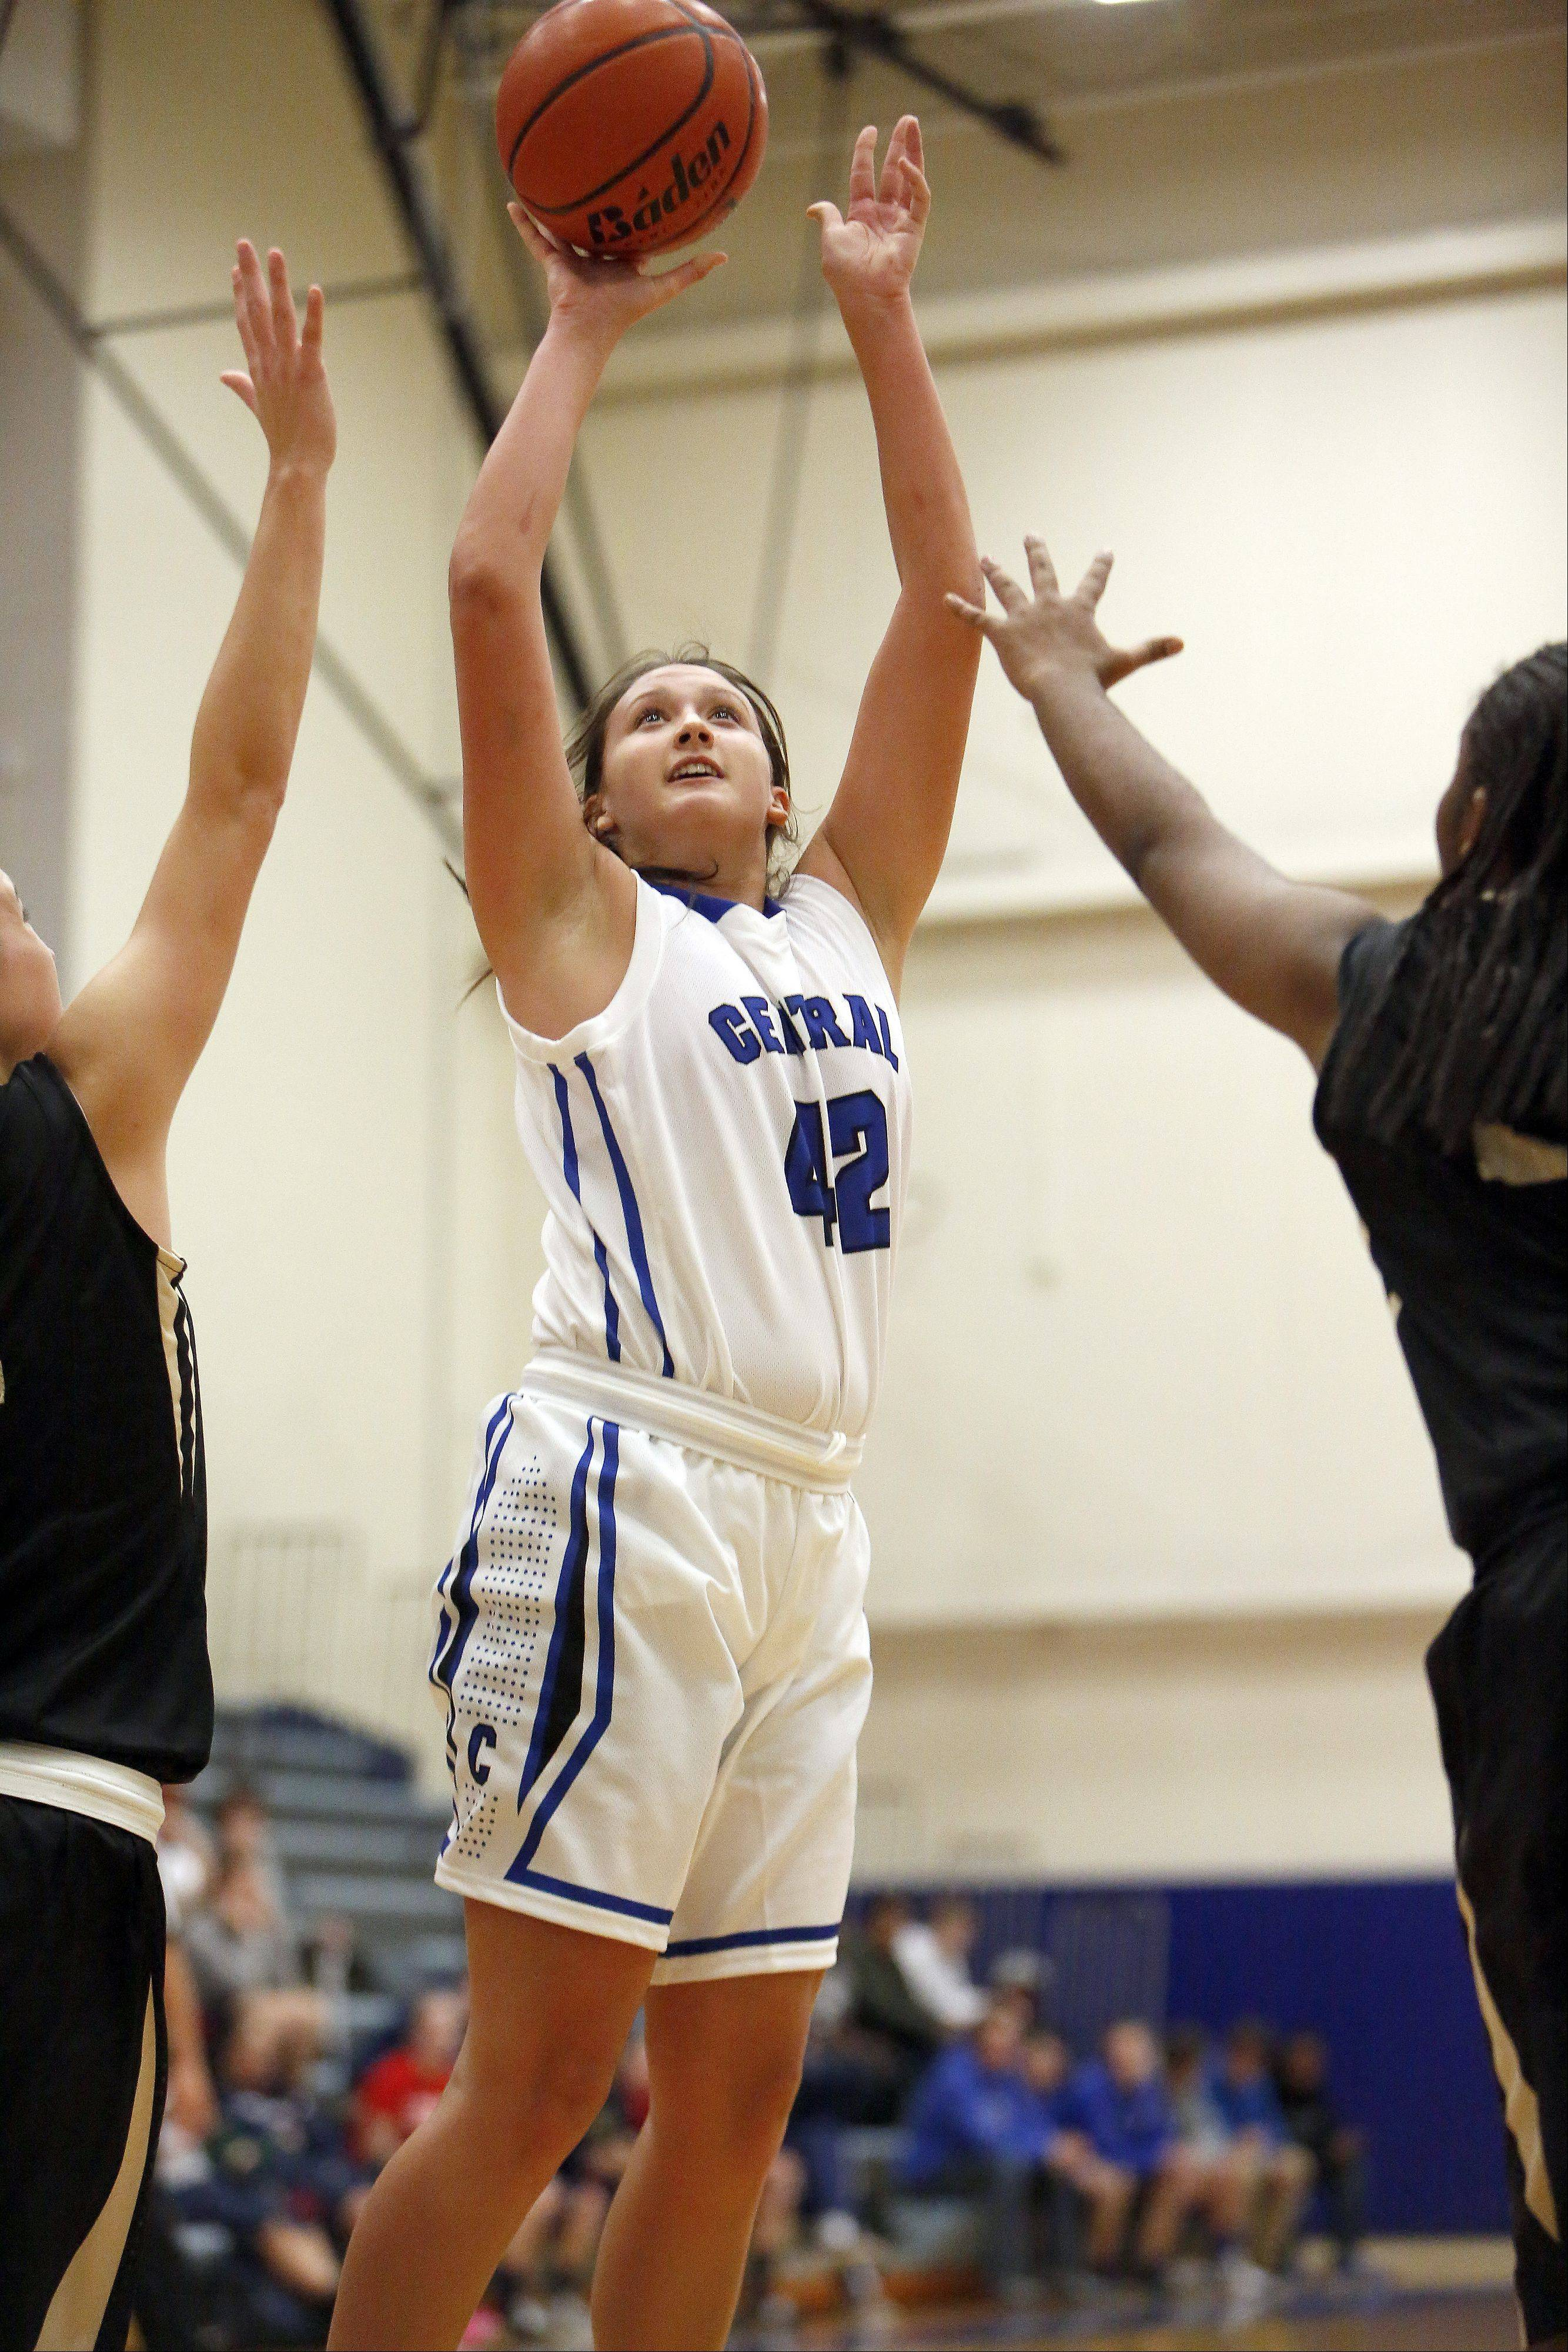 Burlington Central and junior Alison Colby will return to the court for the first time since Jan. 18 on Friday when the Rockets play at Richmond-Burton.